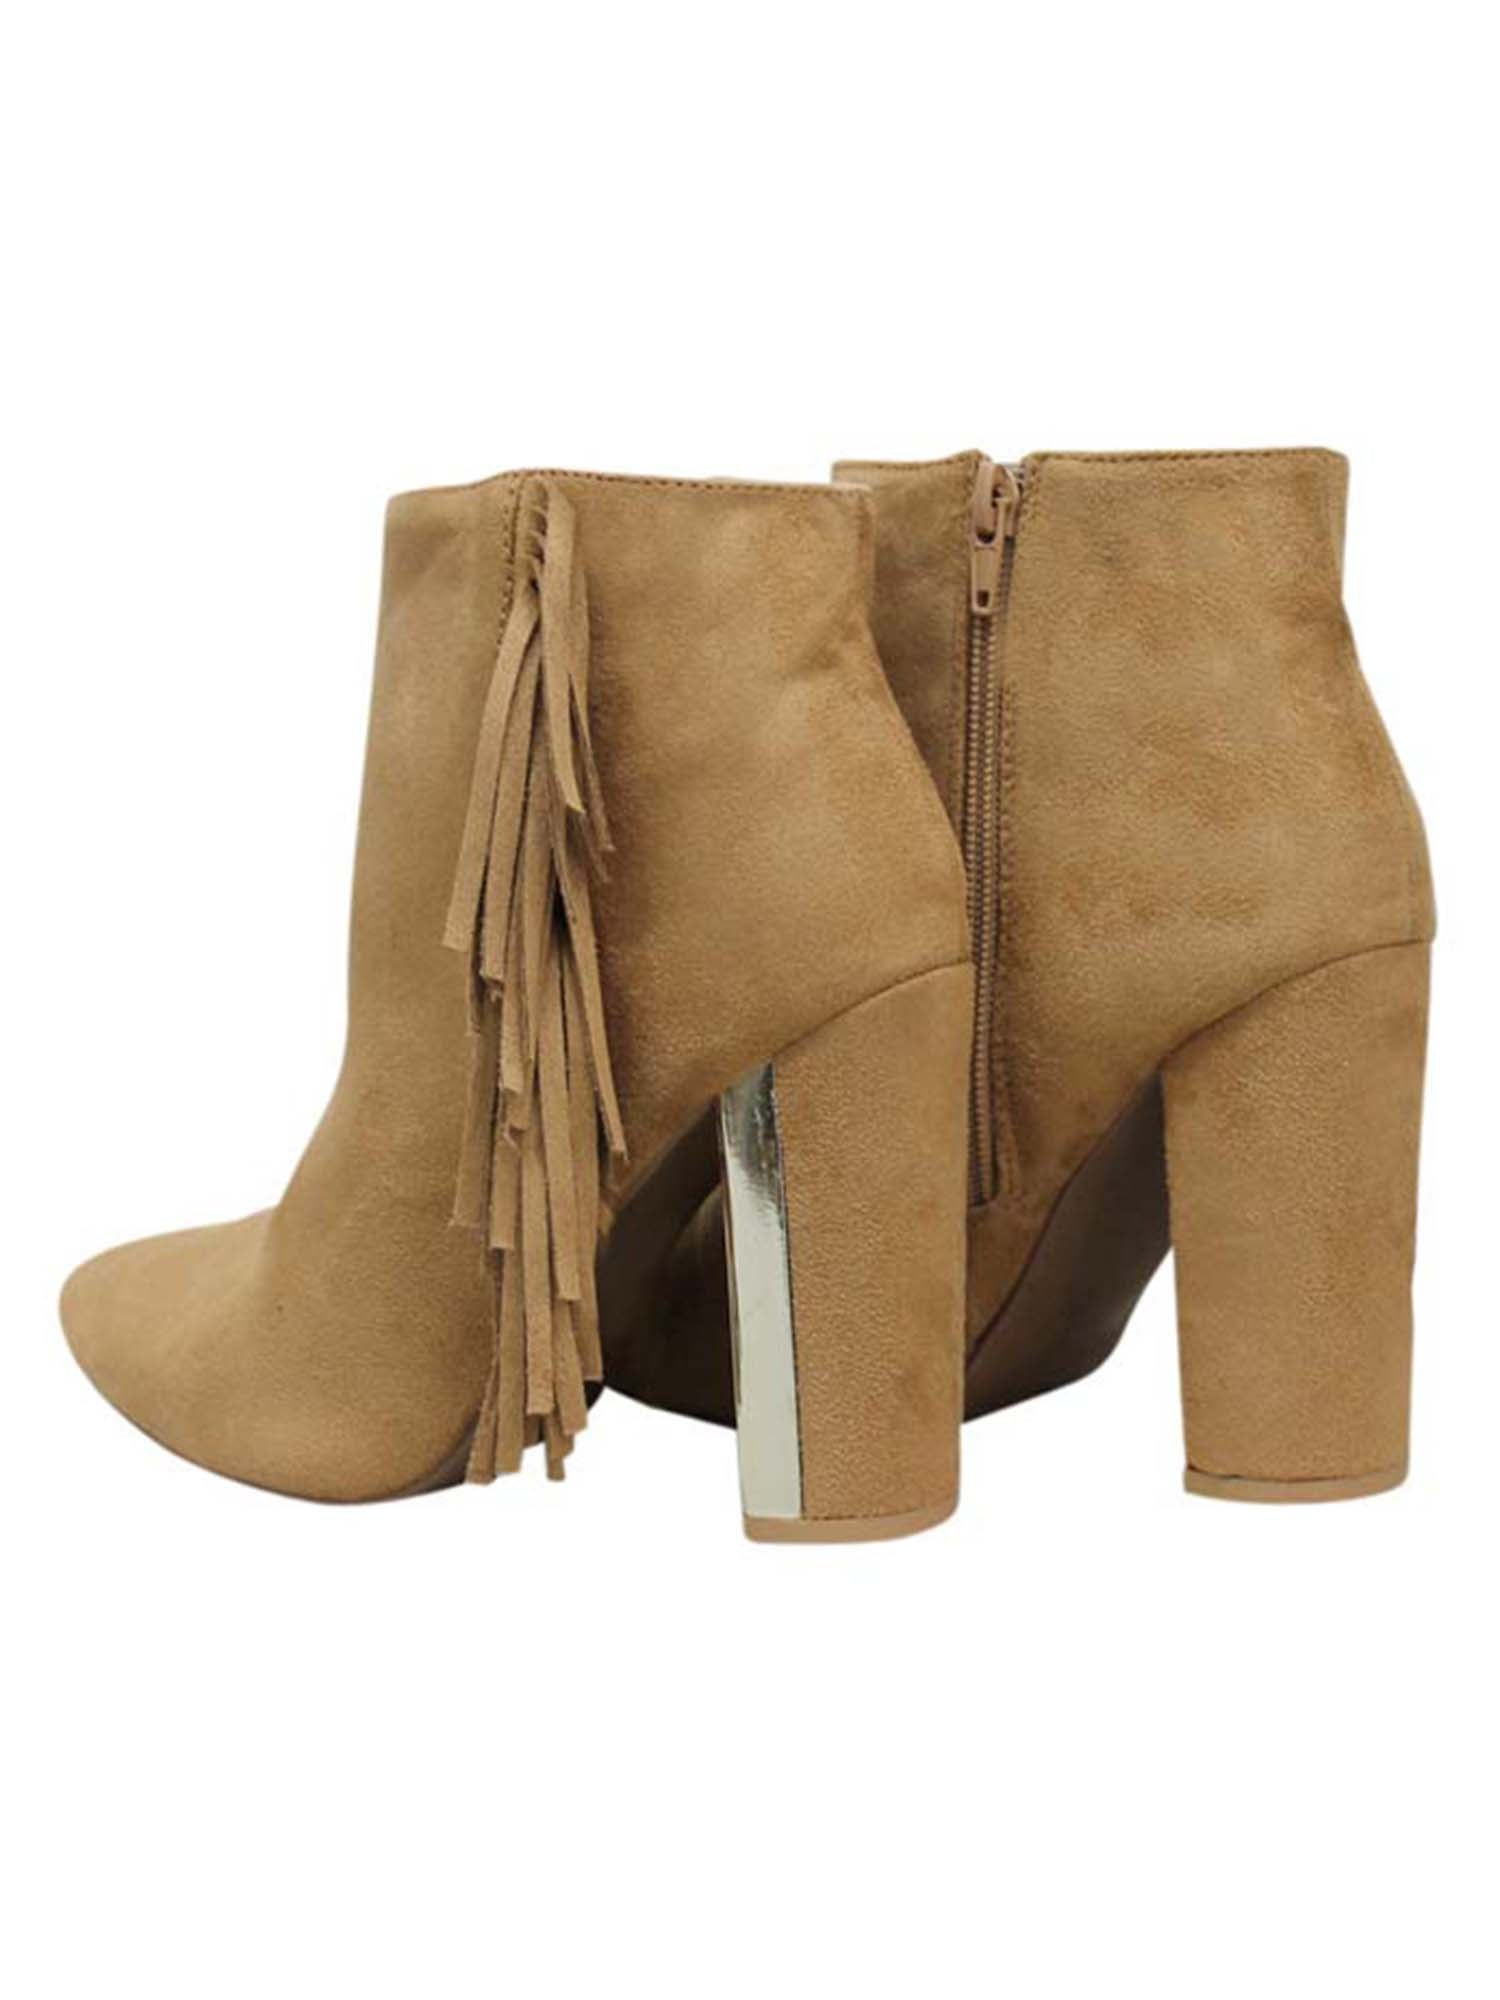 Tan Womens Booties With Stacked Heel & Fringe